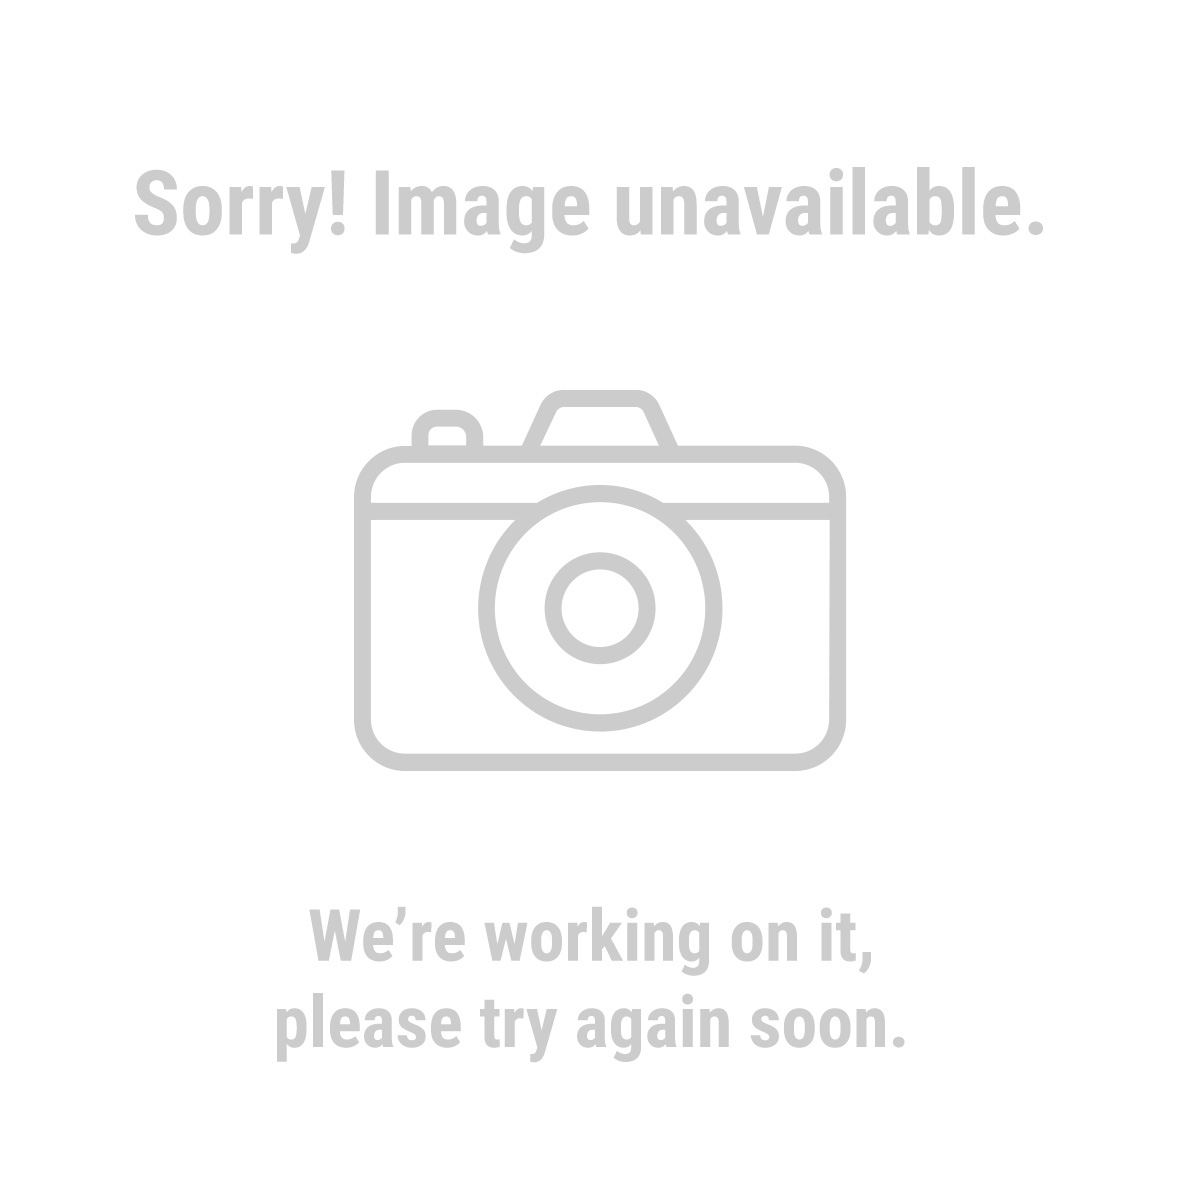 Chicago Electric Welding 68886 180 Amp MIG/Flux Wire Feed Welder